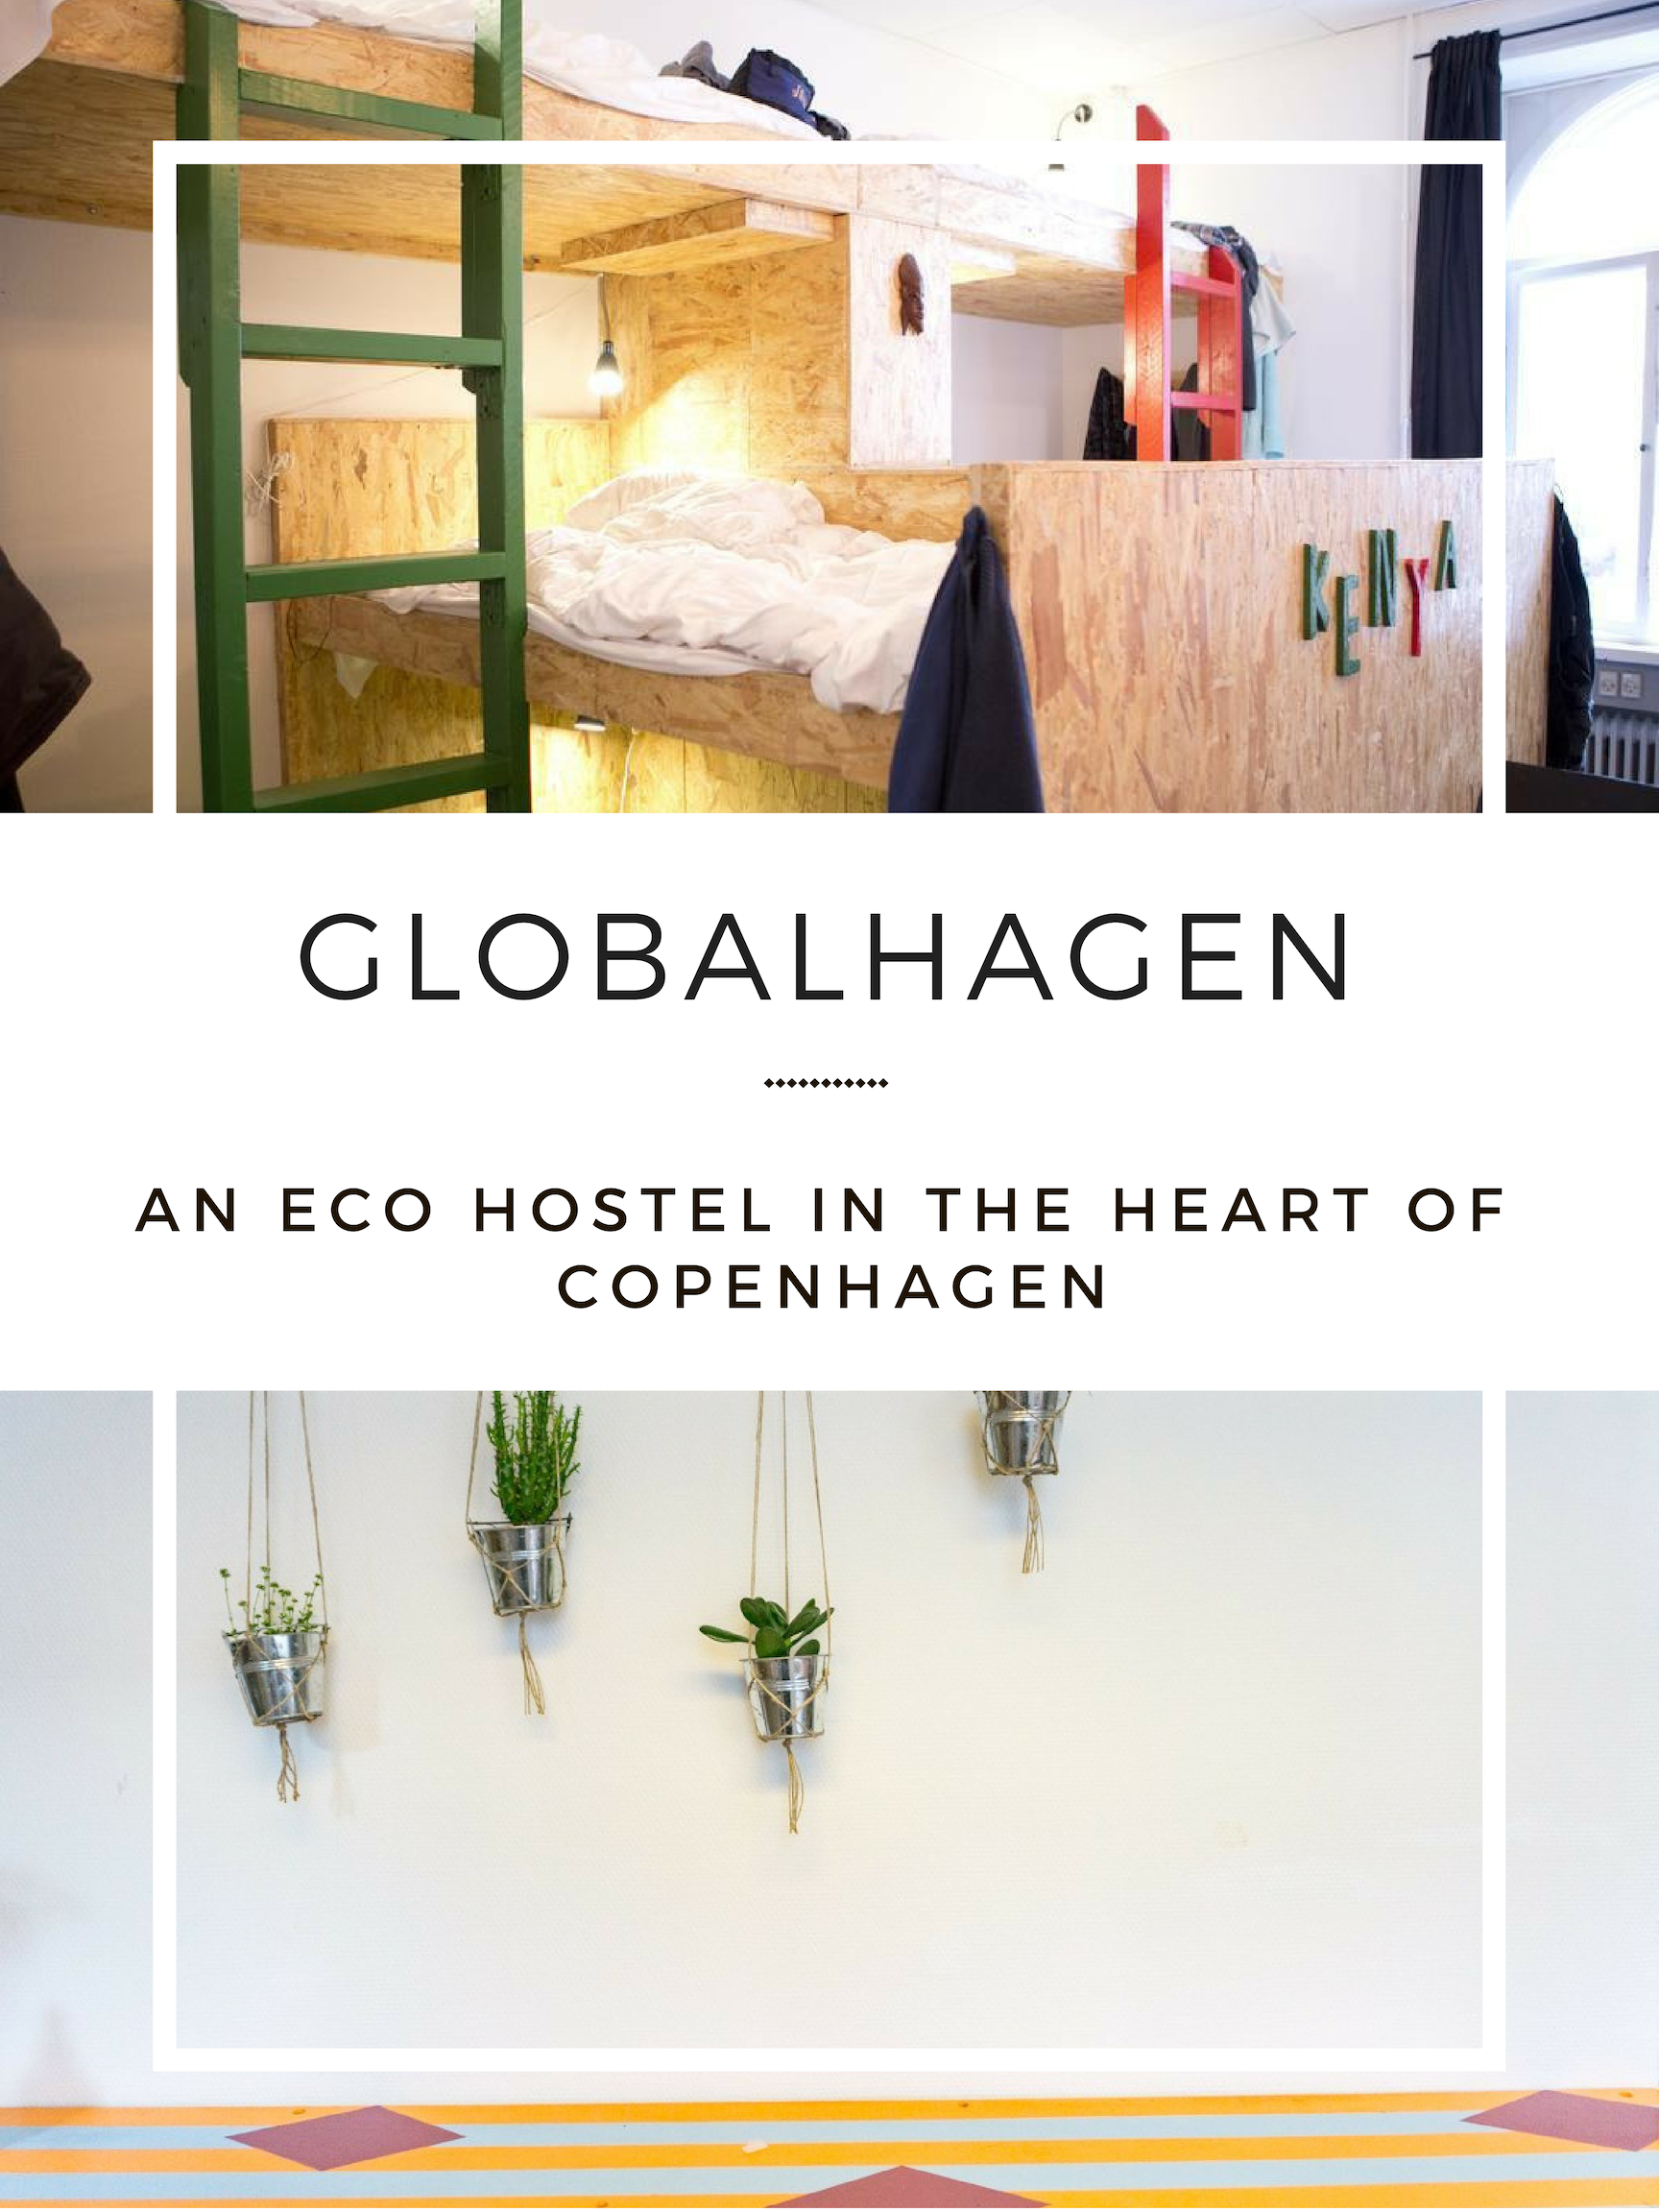 globalhagen an eco hostel in the heart of copenhagen.png